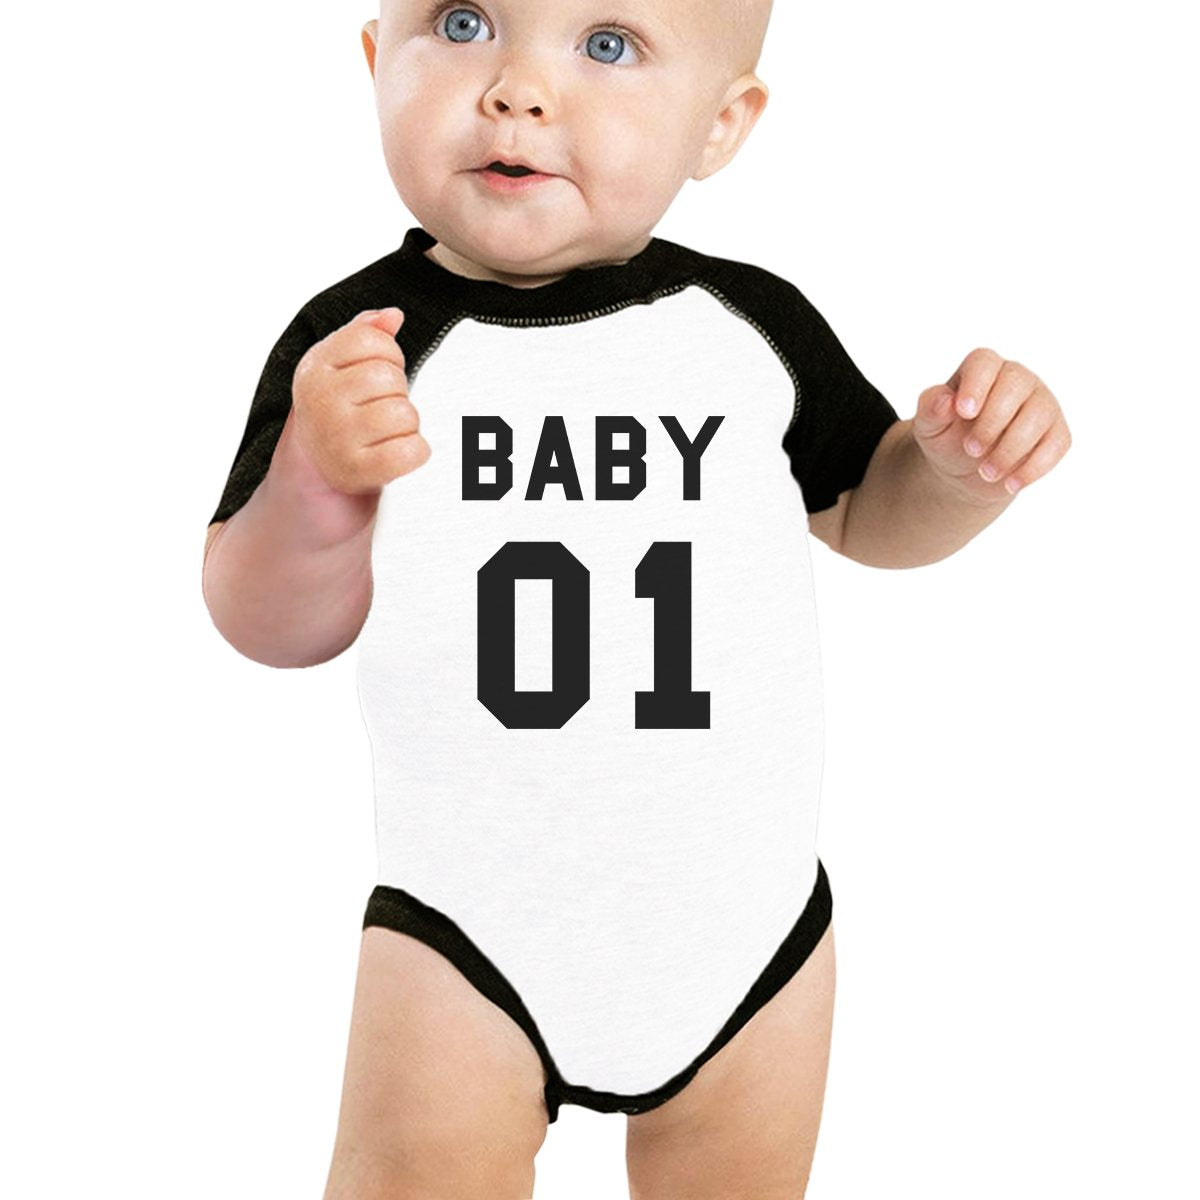 Daddy01 Mommy01 Kid01 Baby01 Pet01 Baby Black And White Baseball Shirt